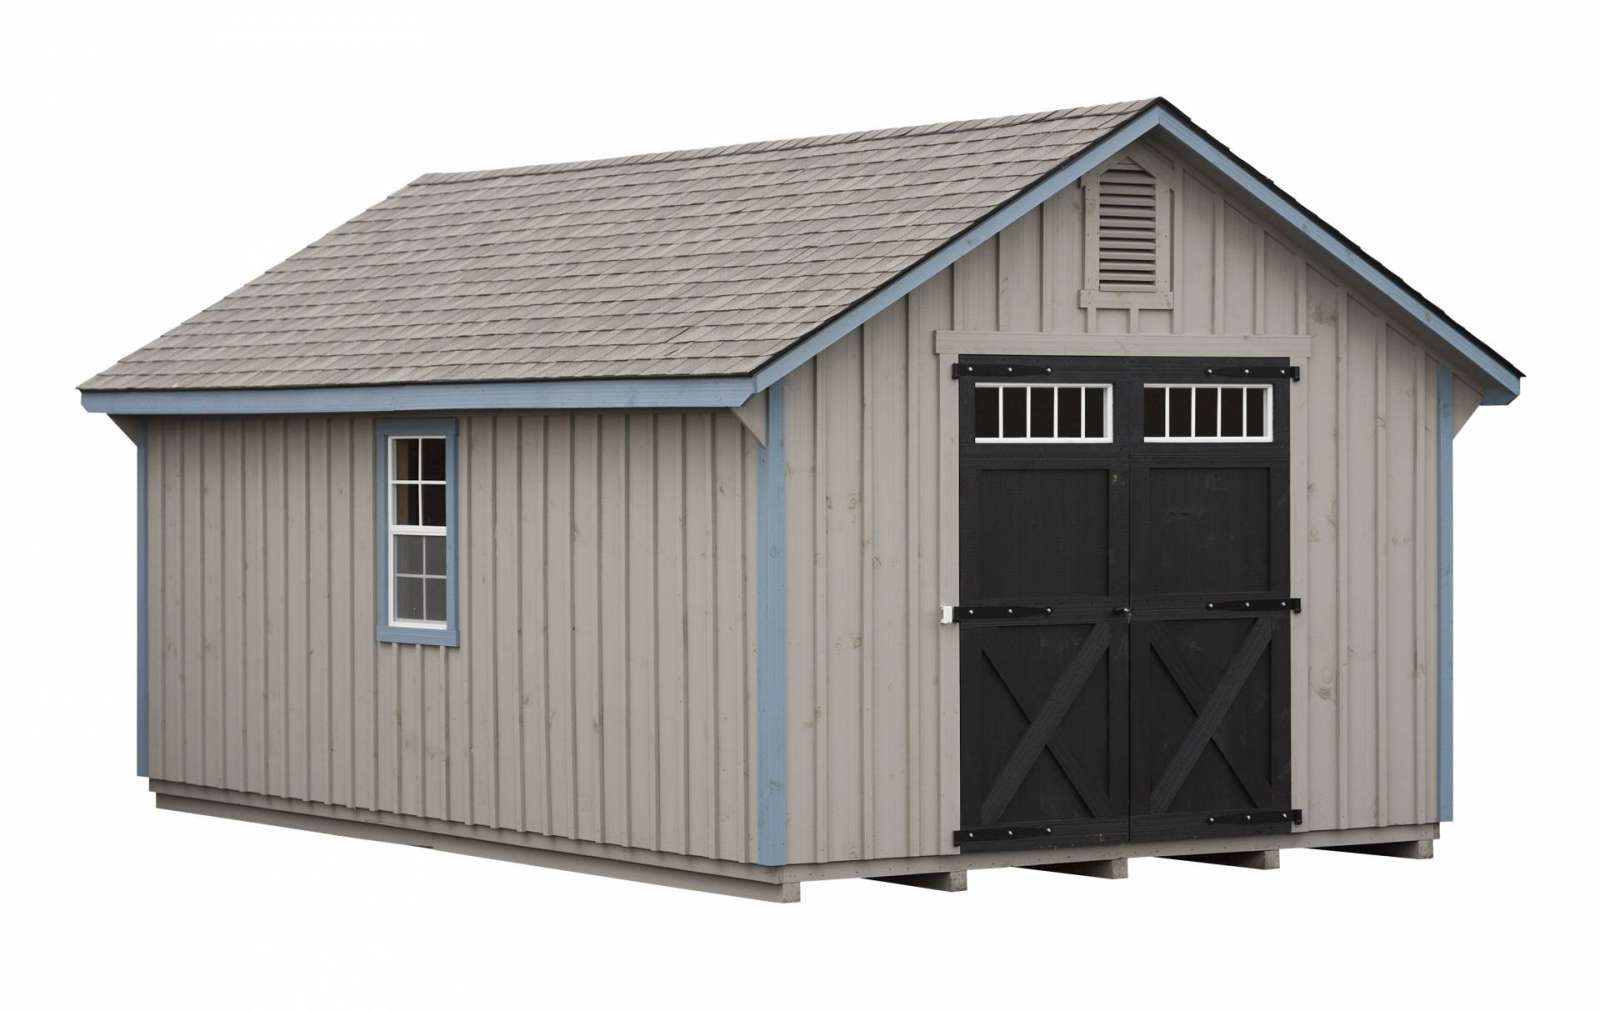 space delaware amish life get near pa sheds with in more stoltzfus sale lancaster county house design and barns plans for unlimited shed garages me prebuilt built pre nj prices country